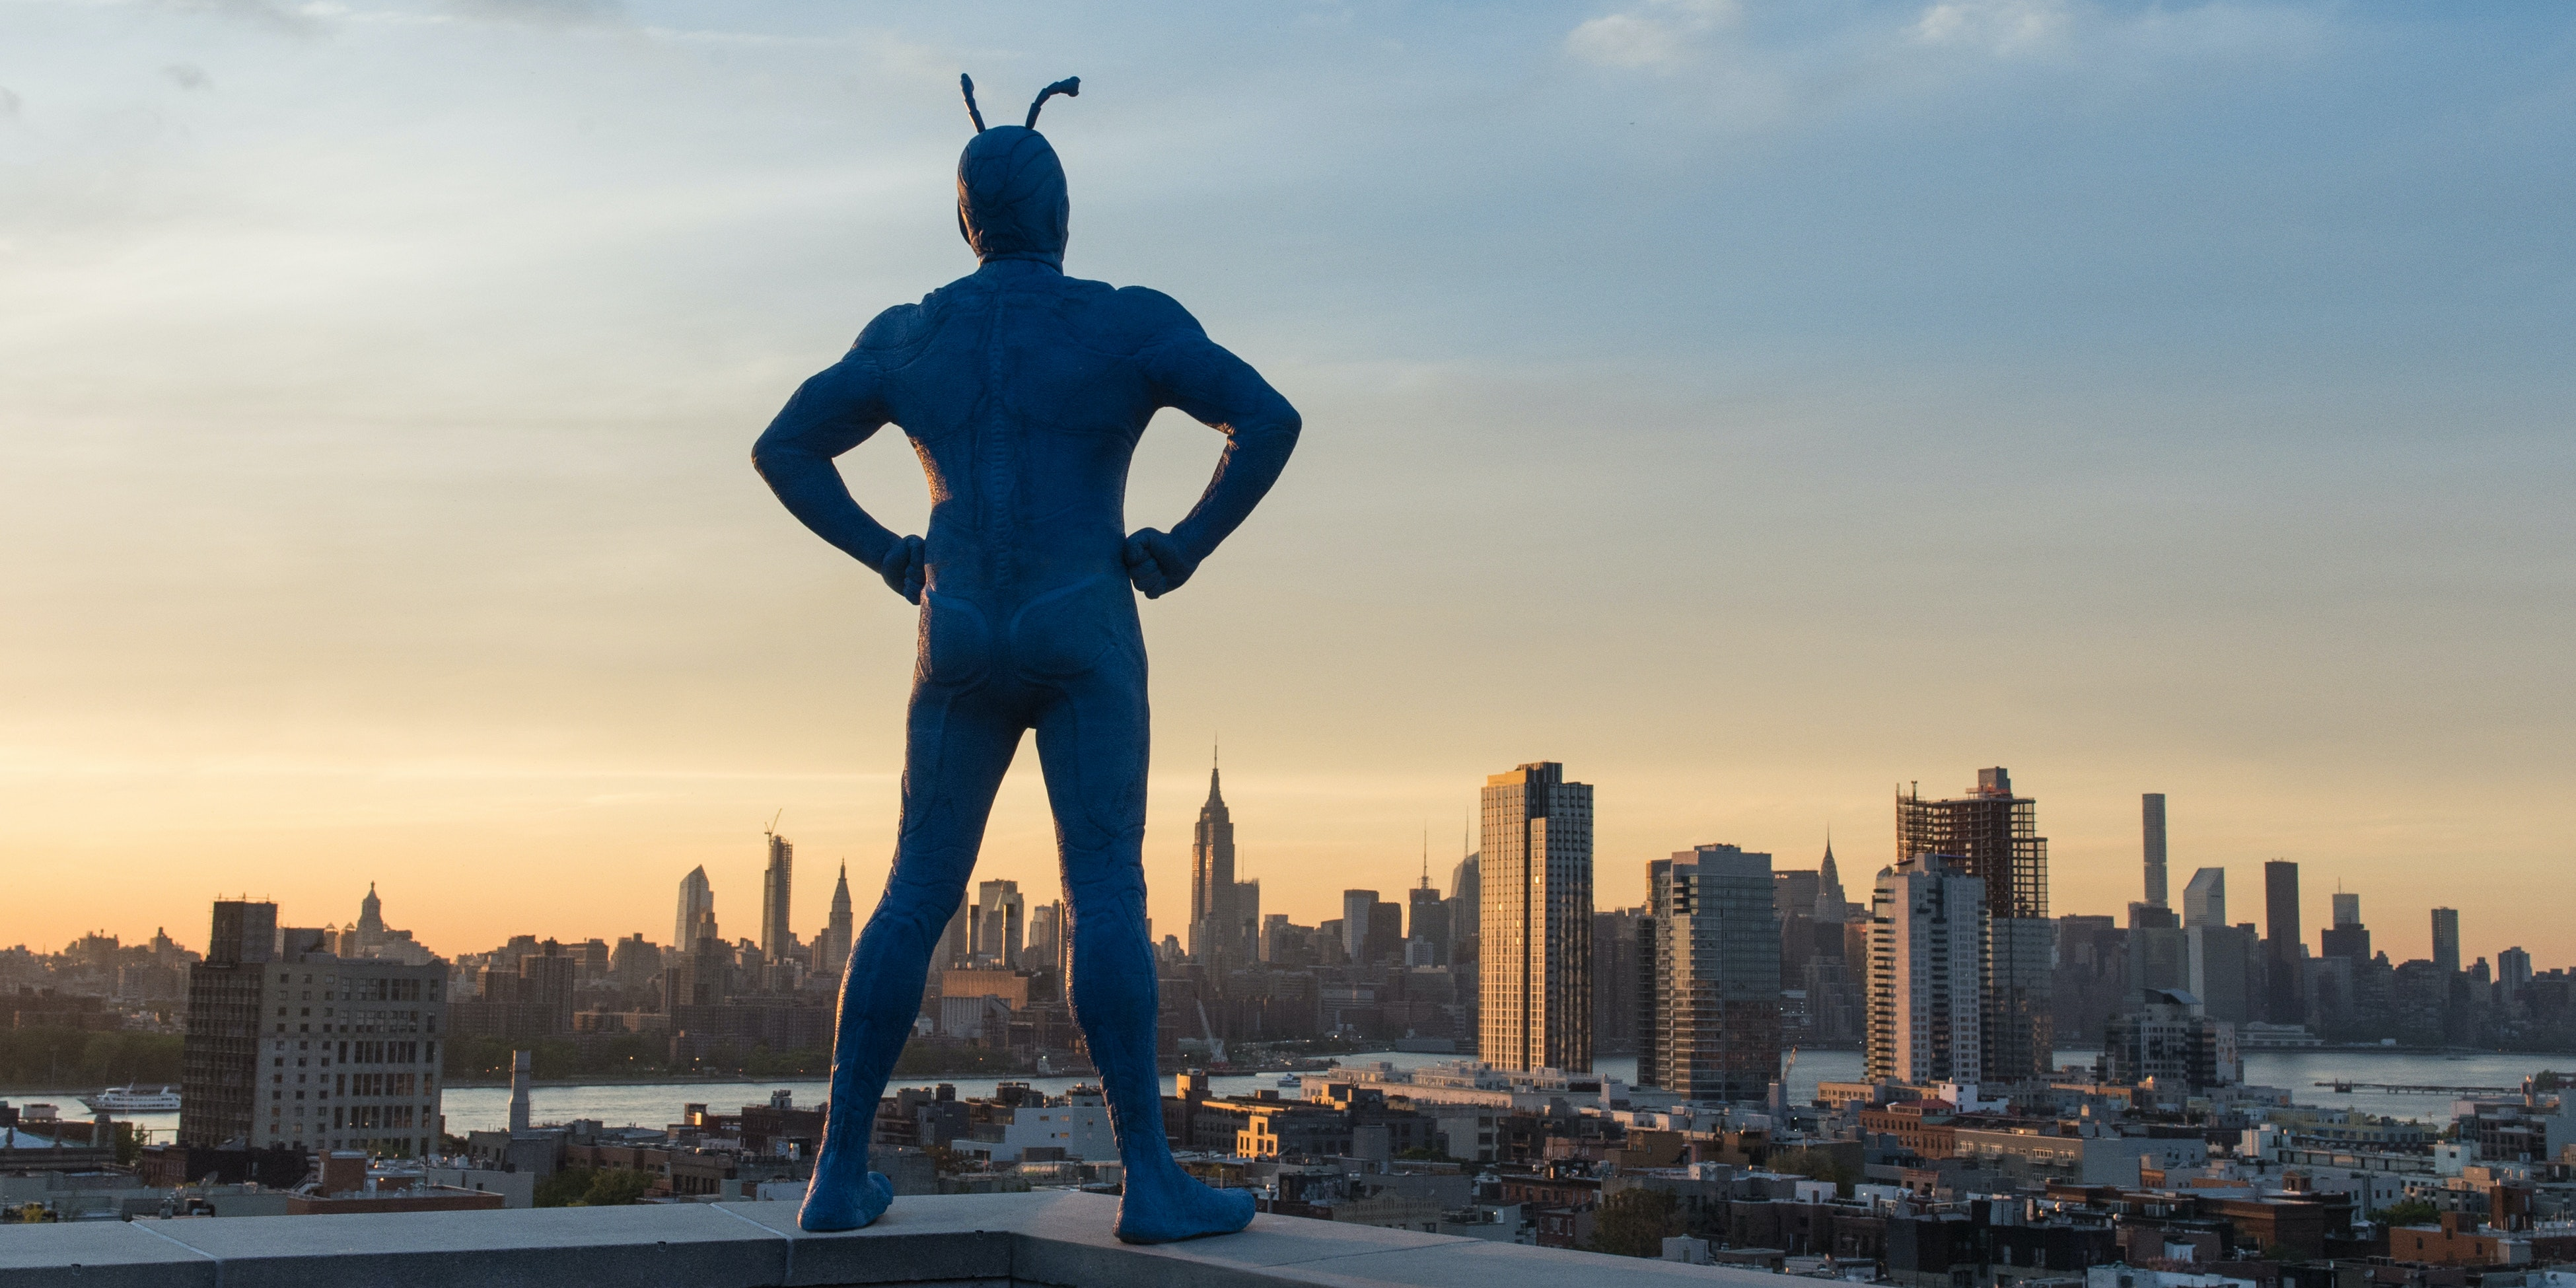 'The Tick', coming soon to Amazon